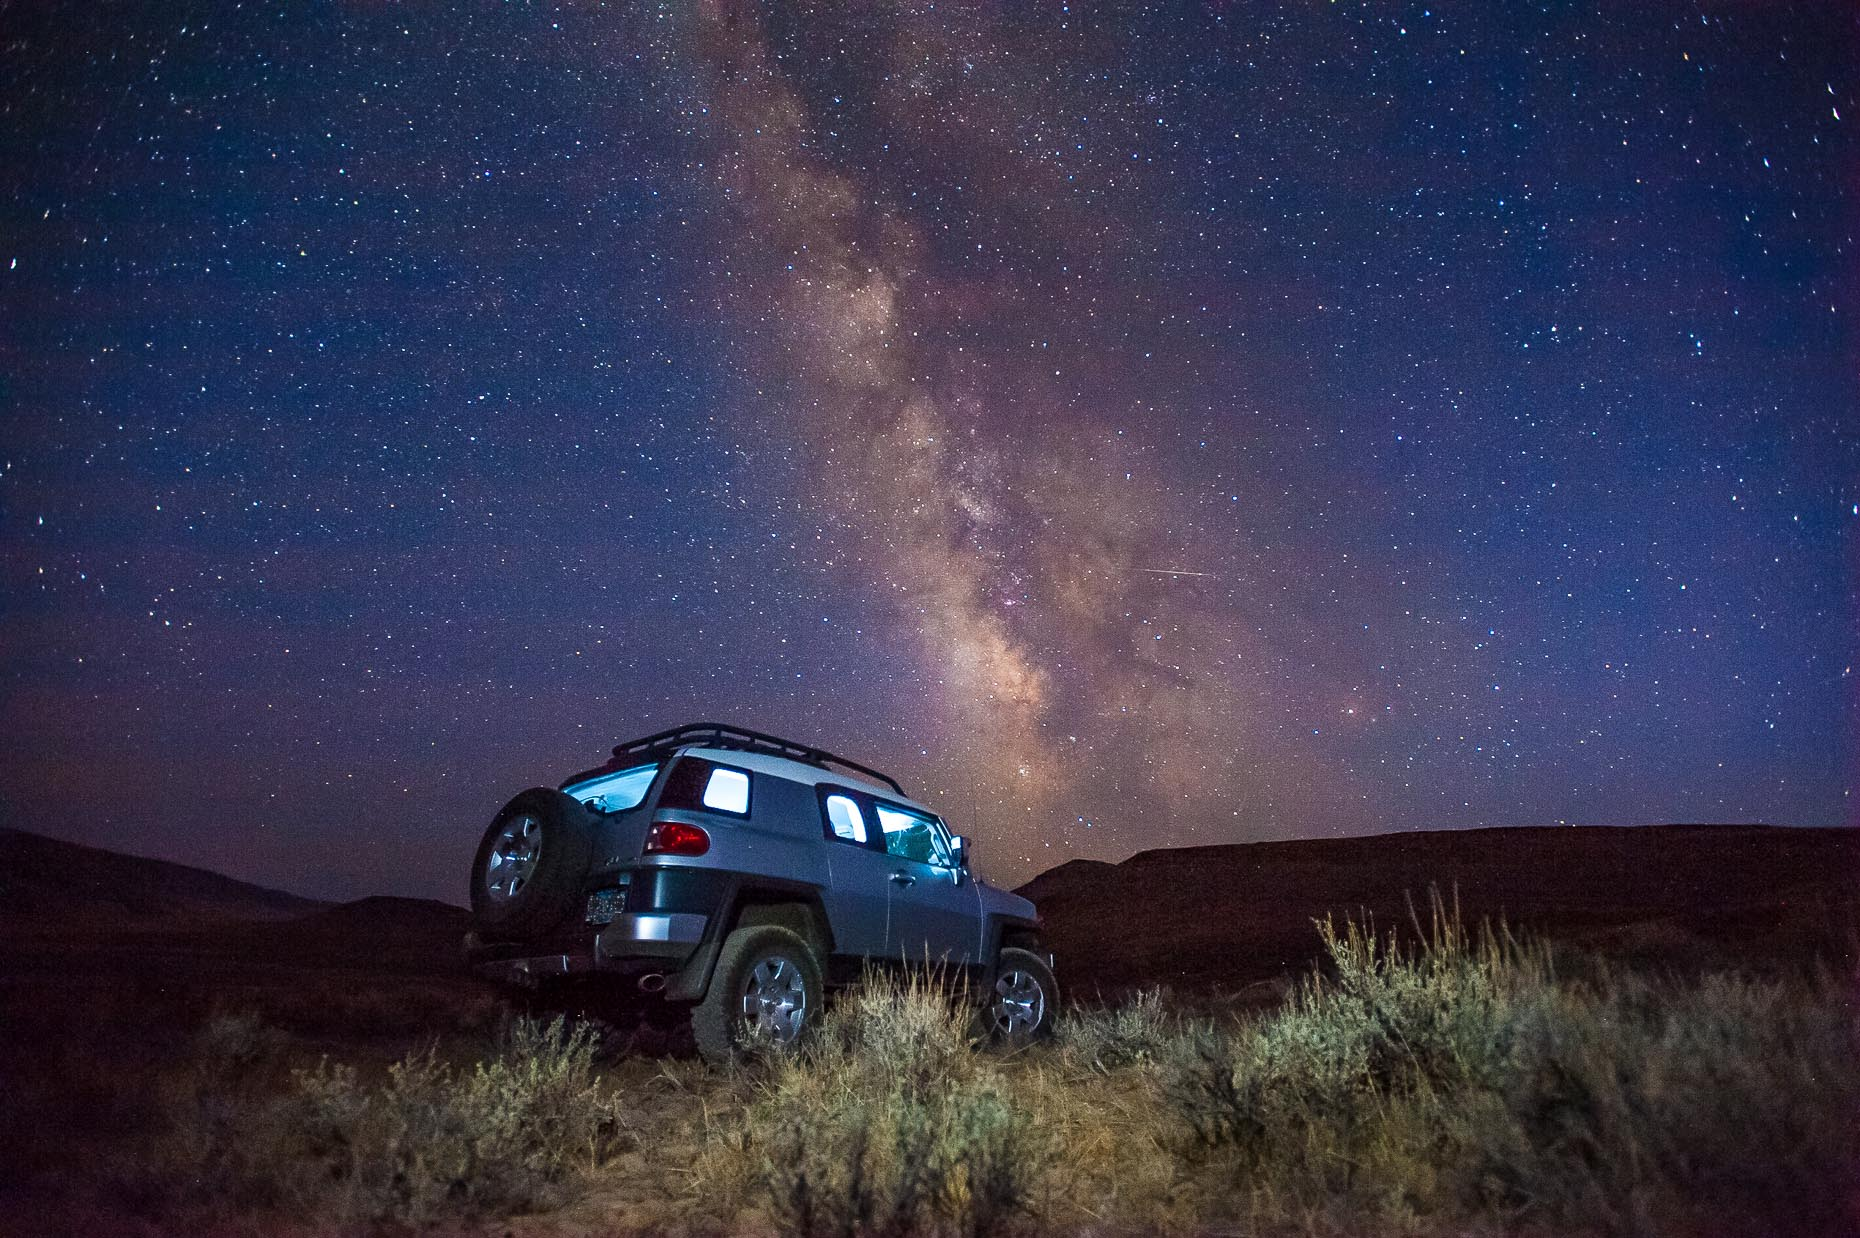 Image of Milky Way Galaxy and FJ Cruiser in desert.